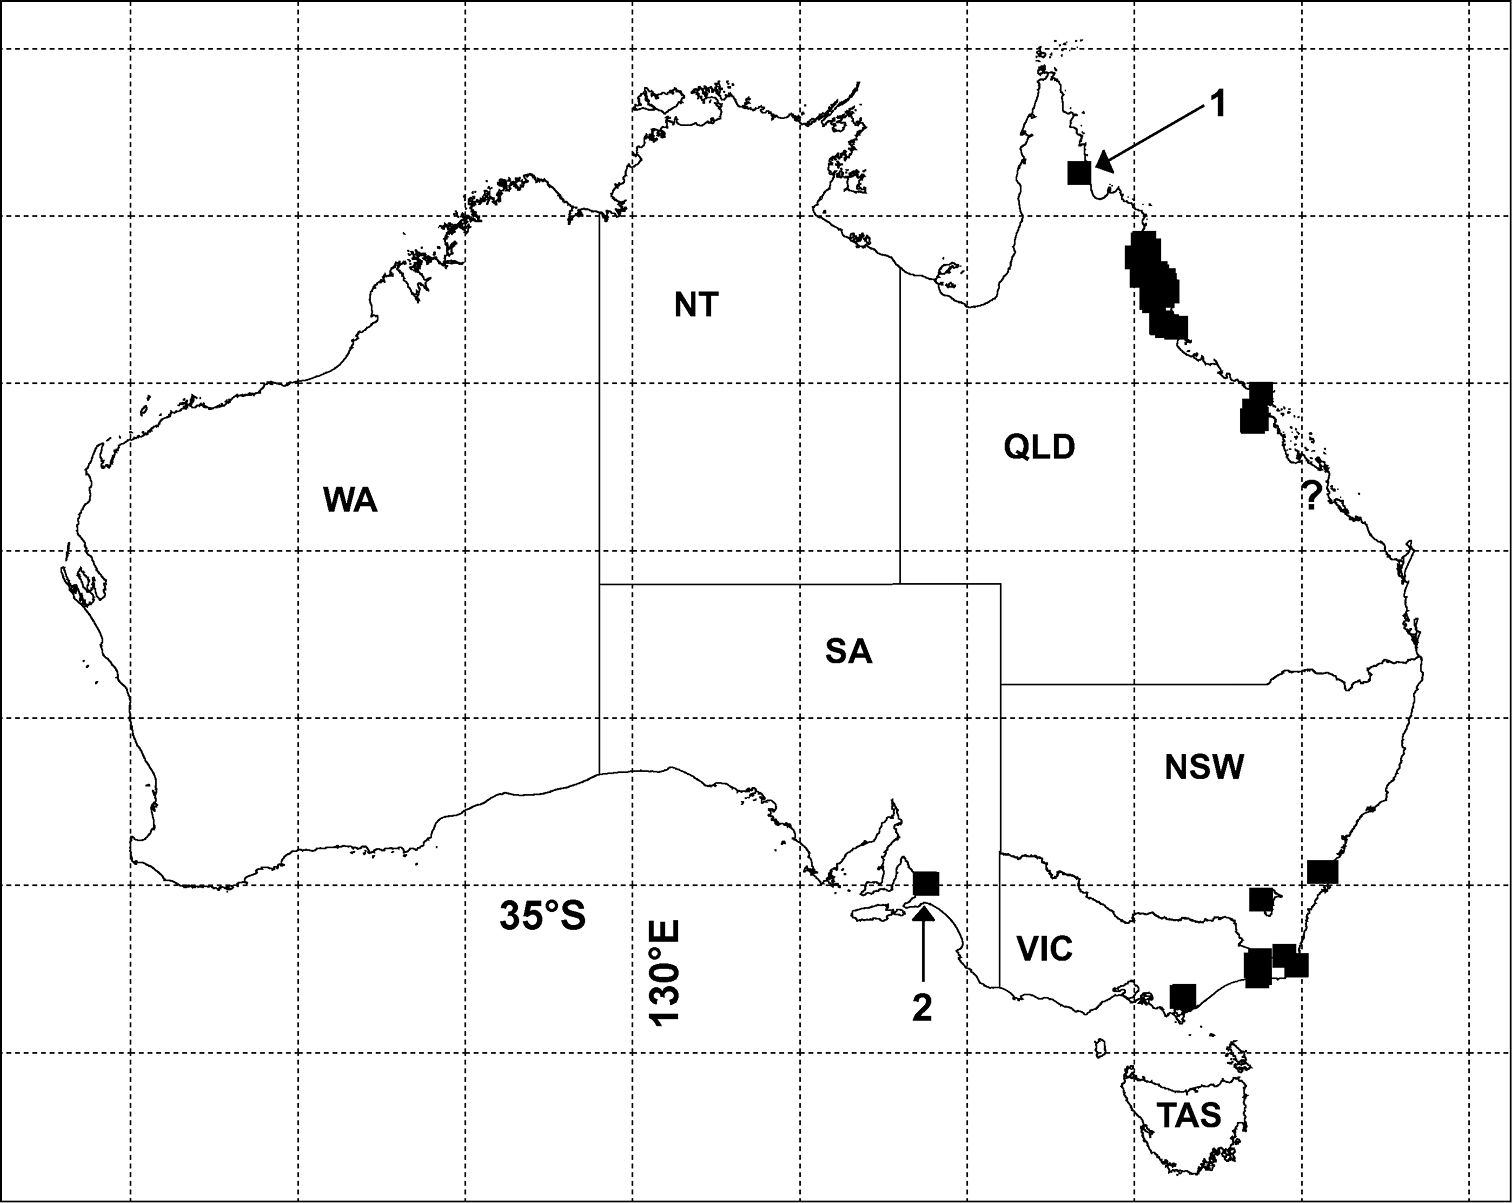 New Species Of Agathodesmus Silvestri 1910 From Australia Niion Ordo Black The Wide Gaps In Genus Distribution Map Suggest To Me That More Remain Be Discovered Especially Wetter Mountain Forests South